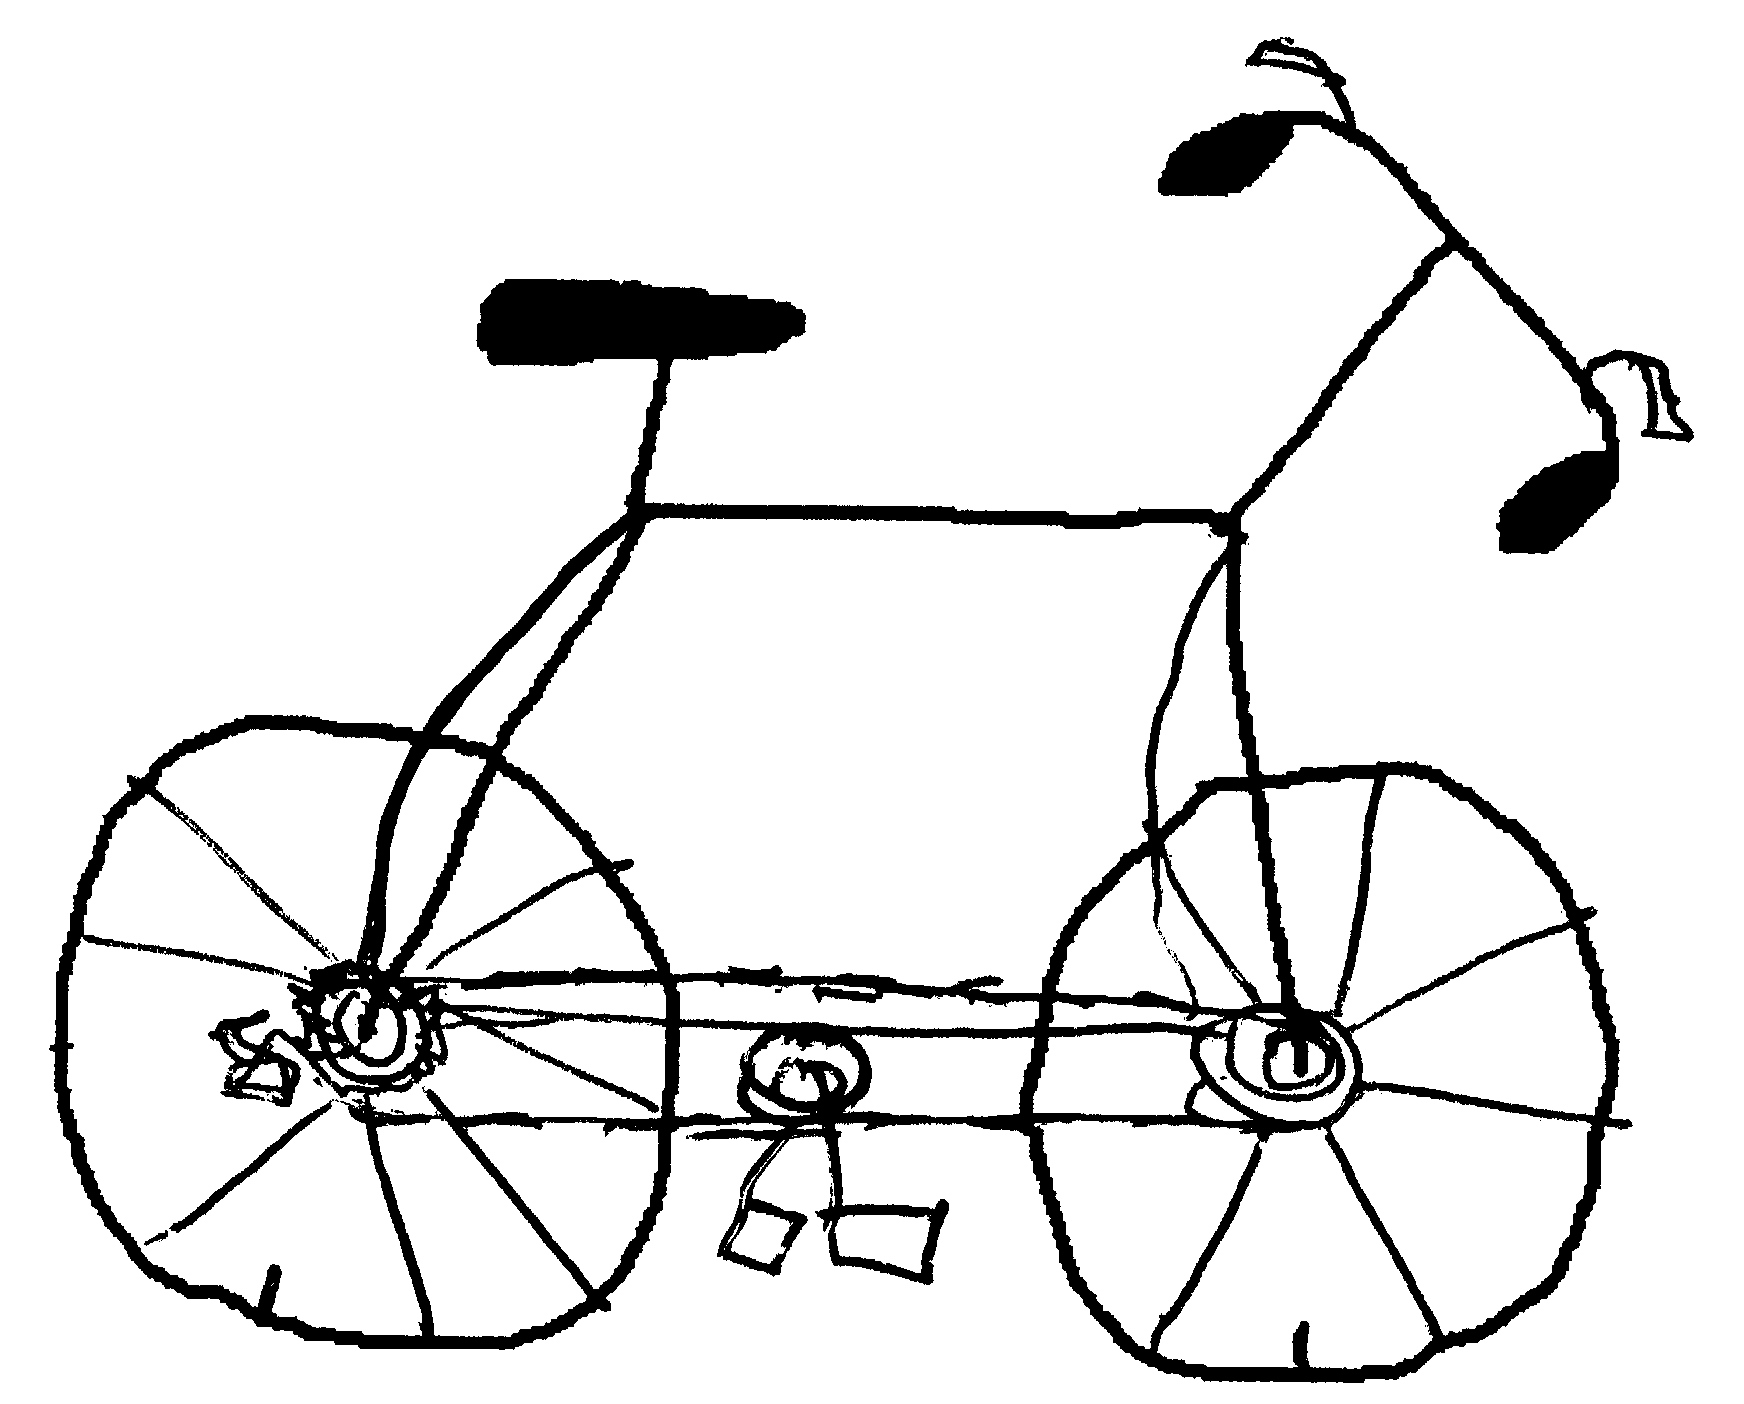 how to draw a bike easy bicycle drawing wallpaper black and white simple bicycle to easy a how bike draw